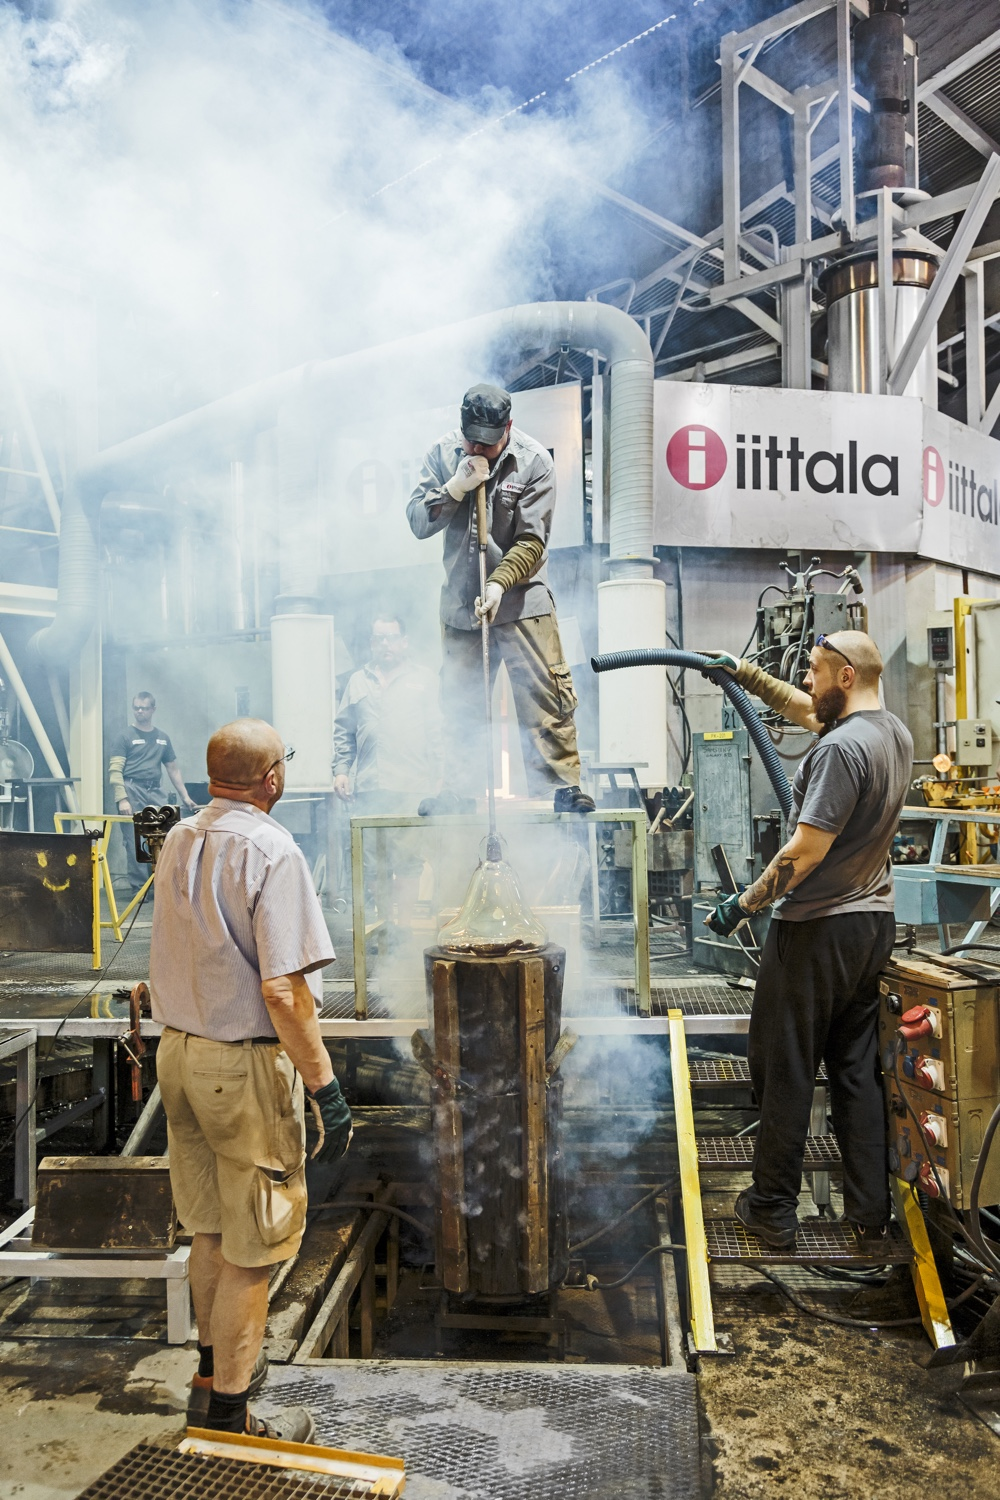 Glass-blowing at the Iittala factory.